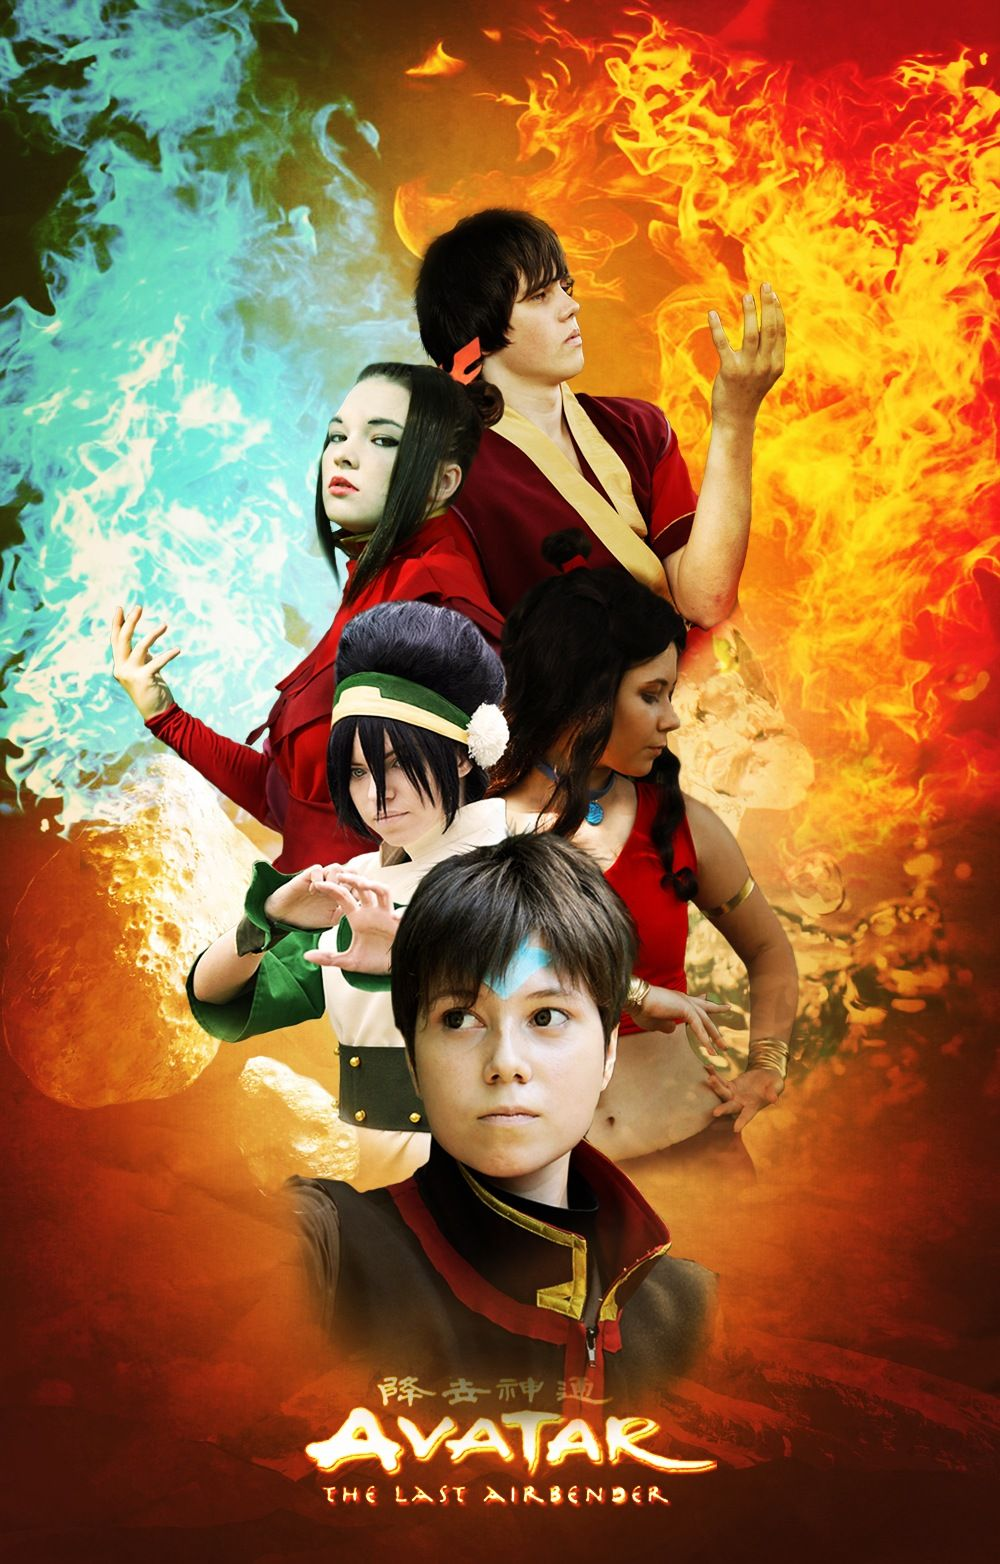 Avatar The Last Airbender 2 By Keito Nyan On Deviantart The Last Airbender Avatar The Last Airbender Avatar